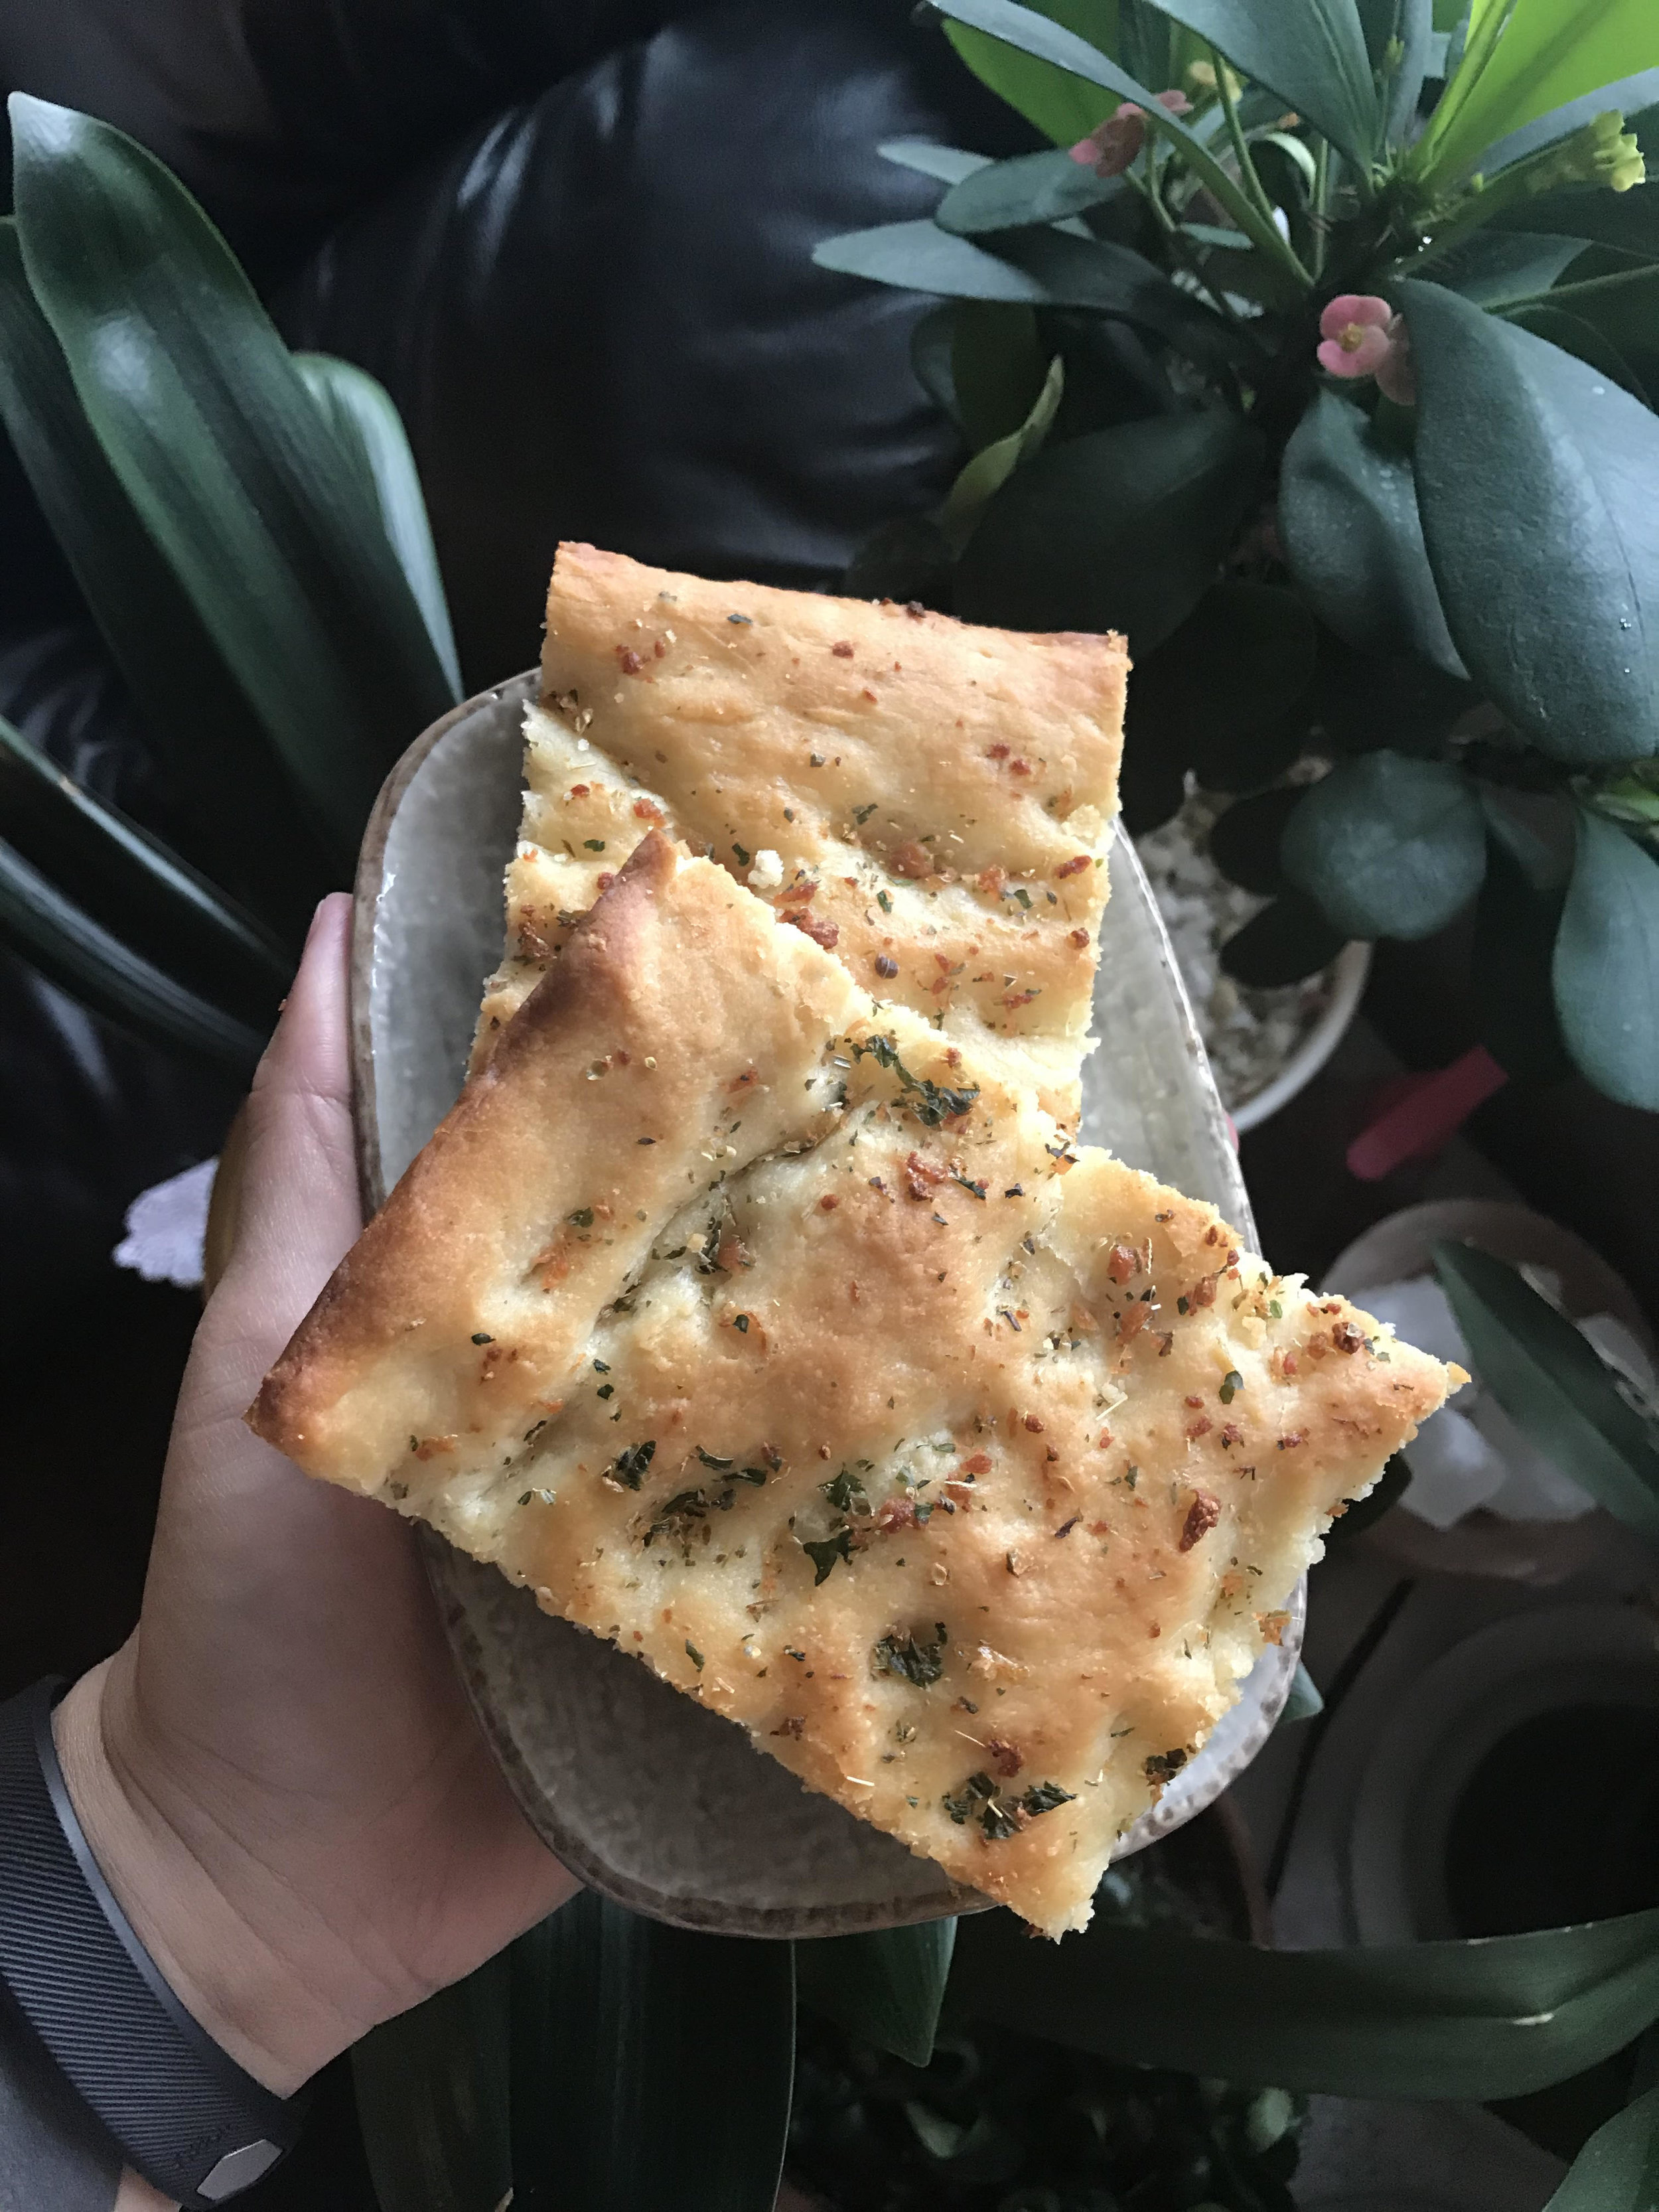 You don't have to use the herbs I listed if you don't want to! You can try Rosemary, or herbless! You can also slice this into breadsticks and dip into marinara.